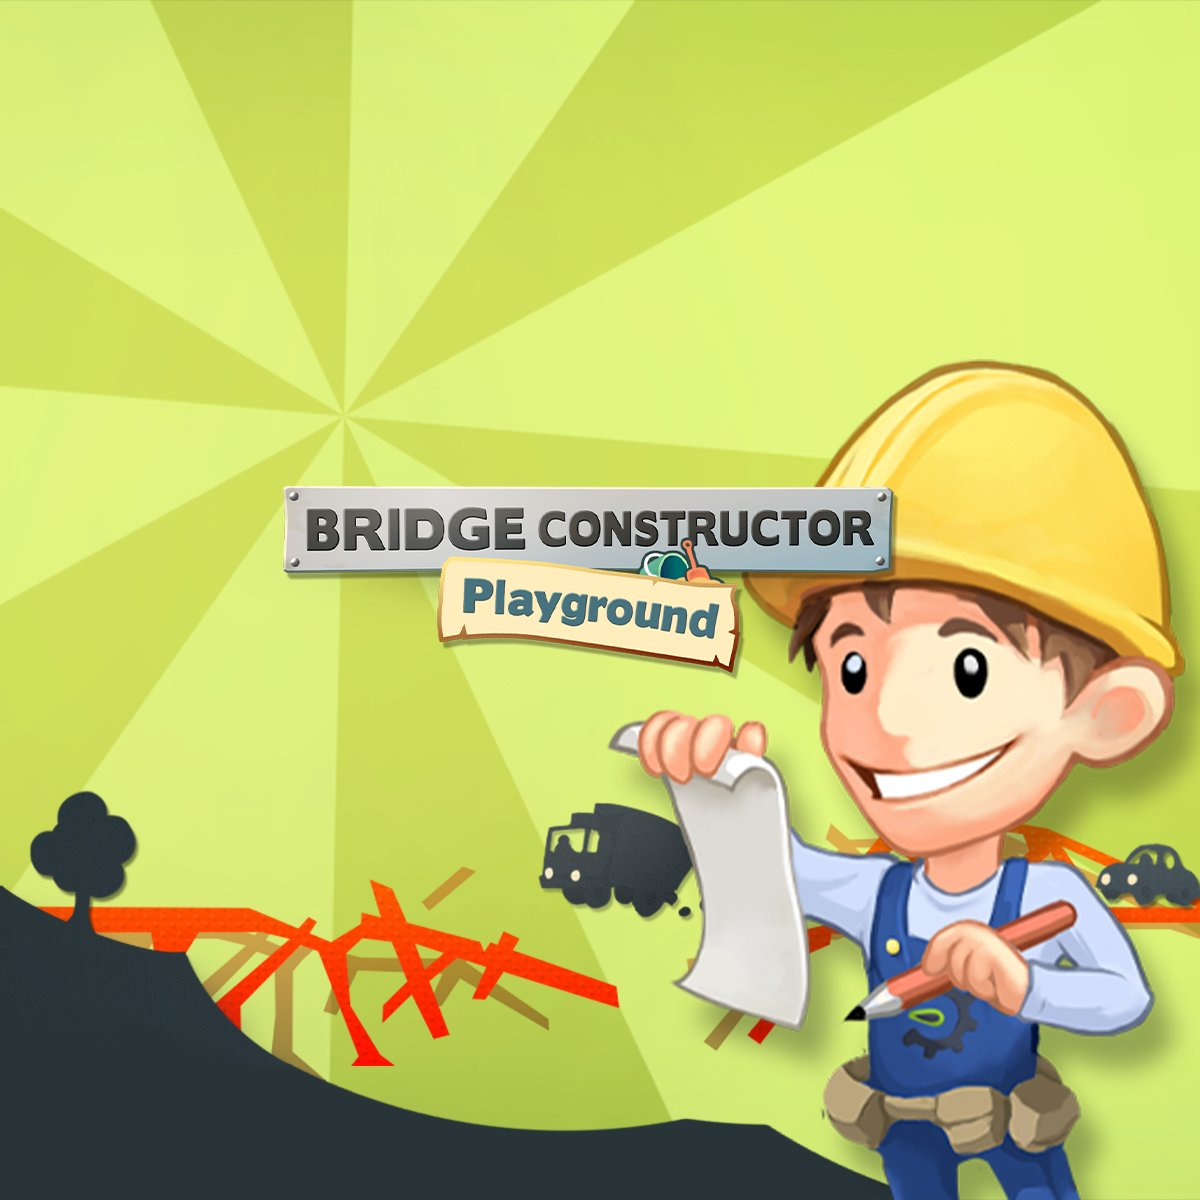 Today we welcome 2 new Bridge Constructor games from @HeadupGames in our ranks 🎊  Let your creativity run wild and bring your vehicles safely to their destination.  👉   Get all titles with discounts up to –60% & complete the collection for another 15% 🙌